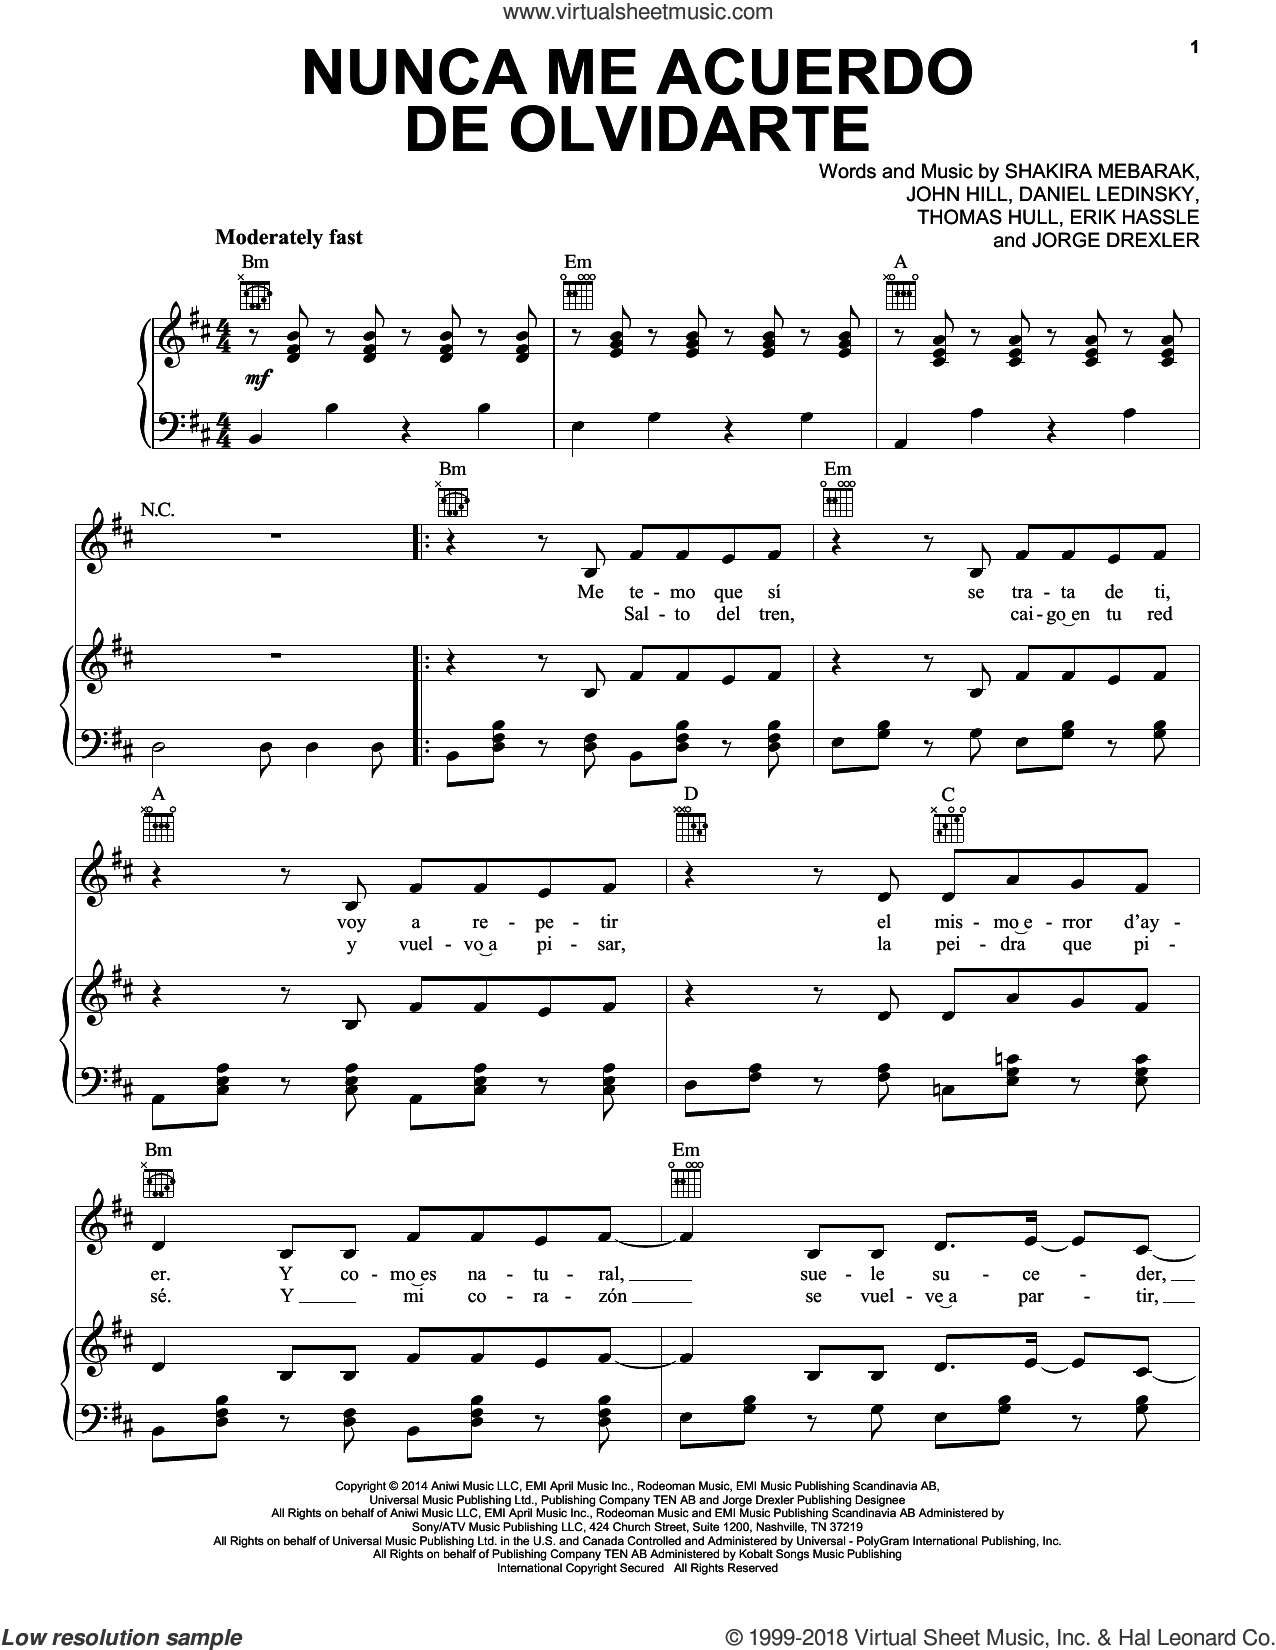 Nunca Me Acuerdo De Olvidarte sheet music for voice, piano or guitar by Tom Hull, Shakira, John Hill, Jorge Drexler and Shakira Mebarak. Score Image Preview.